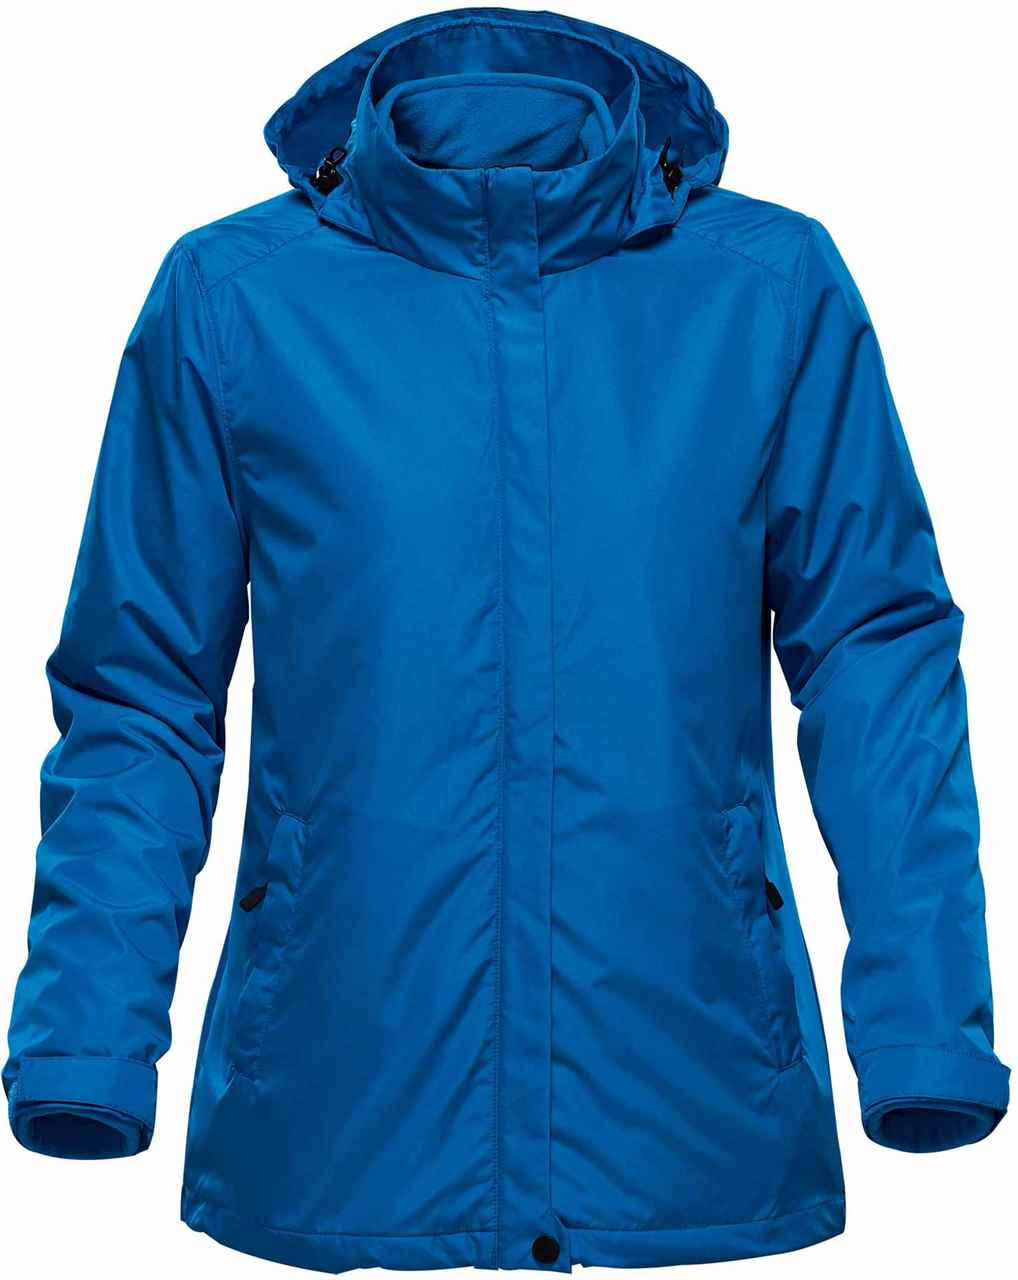 Picture of Stormtech Women's Nautilus 3-in-1 Jacket